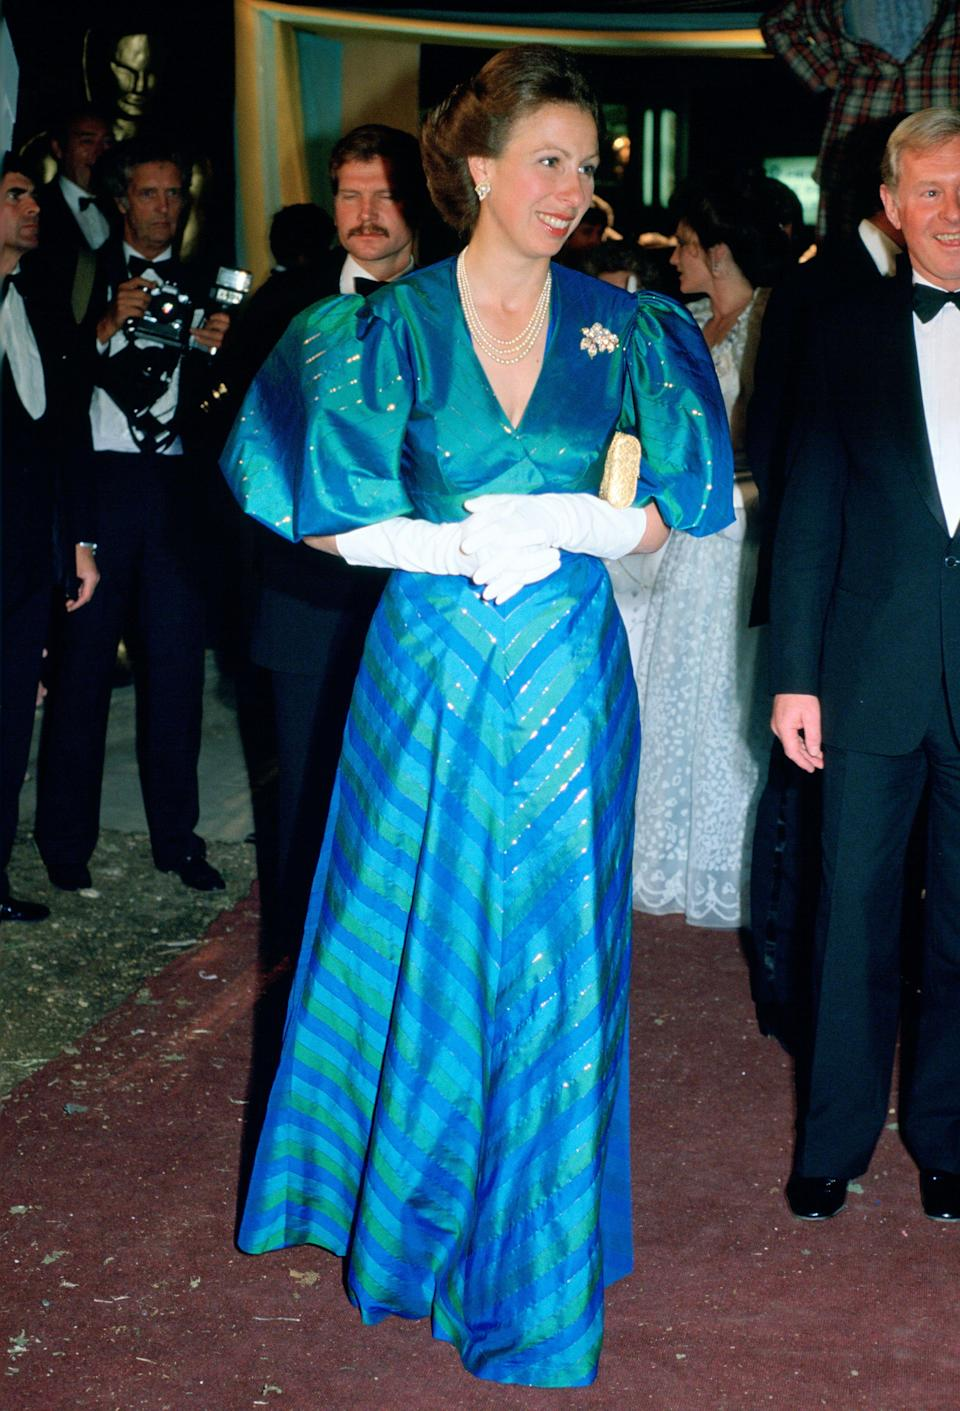 <p>A dedicated philanthropist who is often cited as the hardest-working member of the Royal Family, Princess Anne is also known for her idiosyncratic yet elegant style, whether dressed down in a knitted vest or smartly turned out in a chic lilac coat. Here we recreate three of her most iconic looks.<br></p>